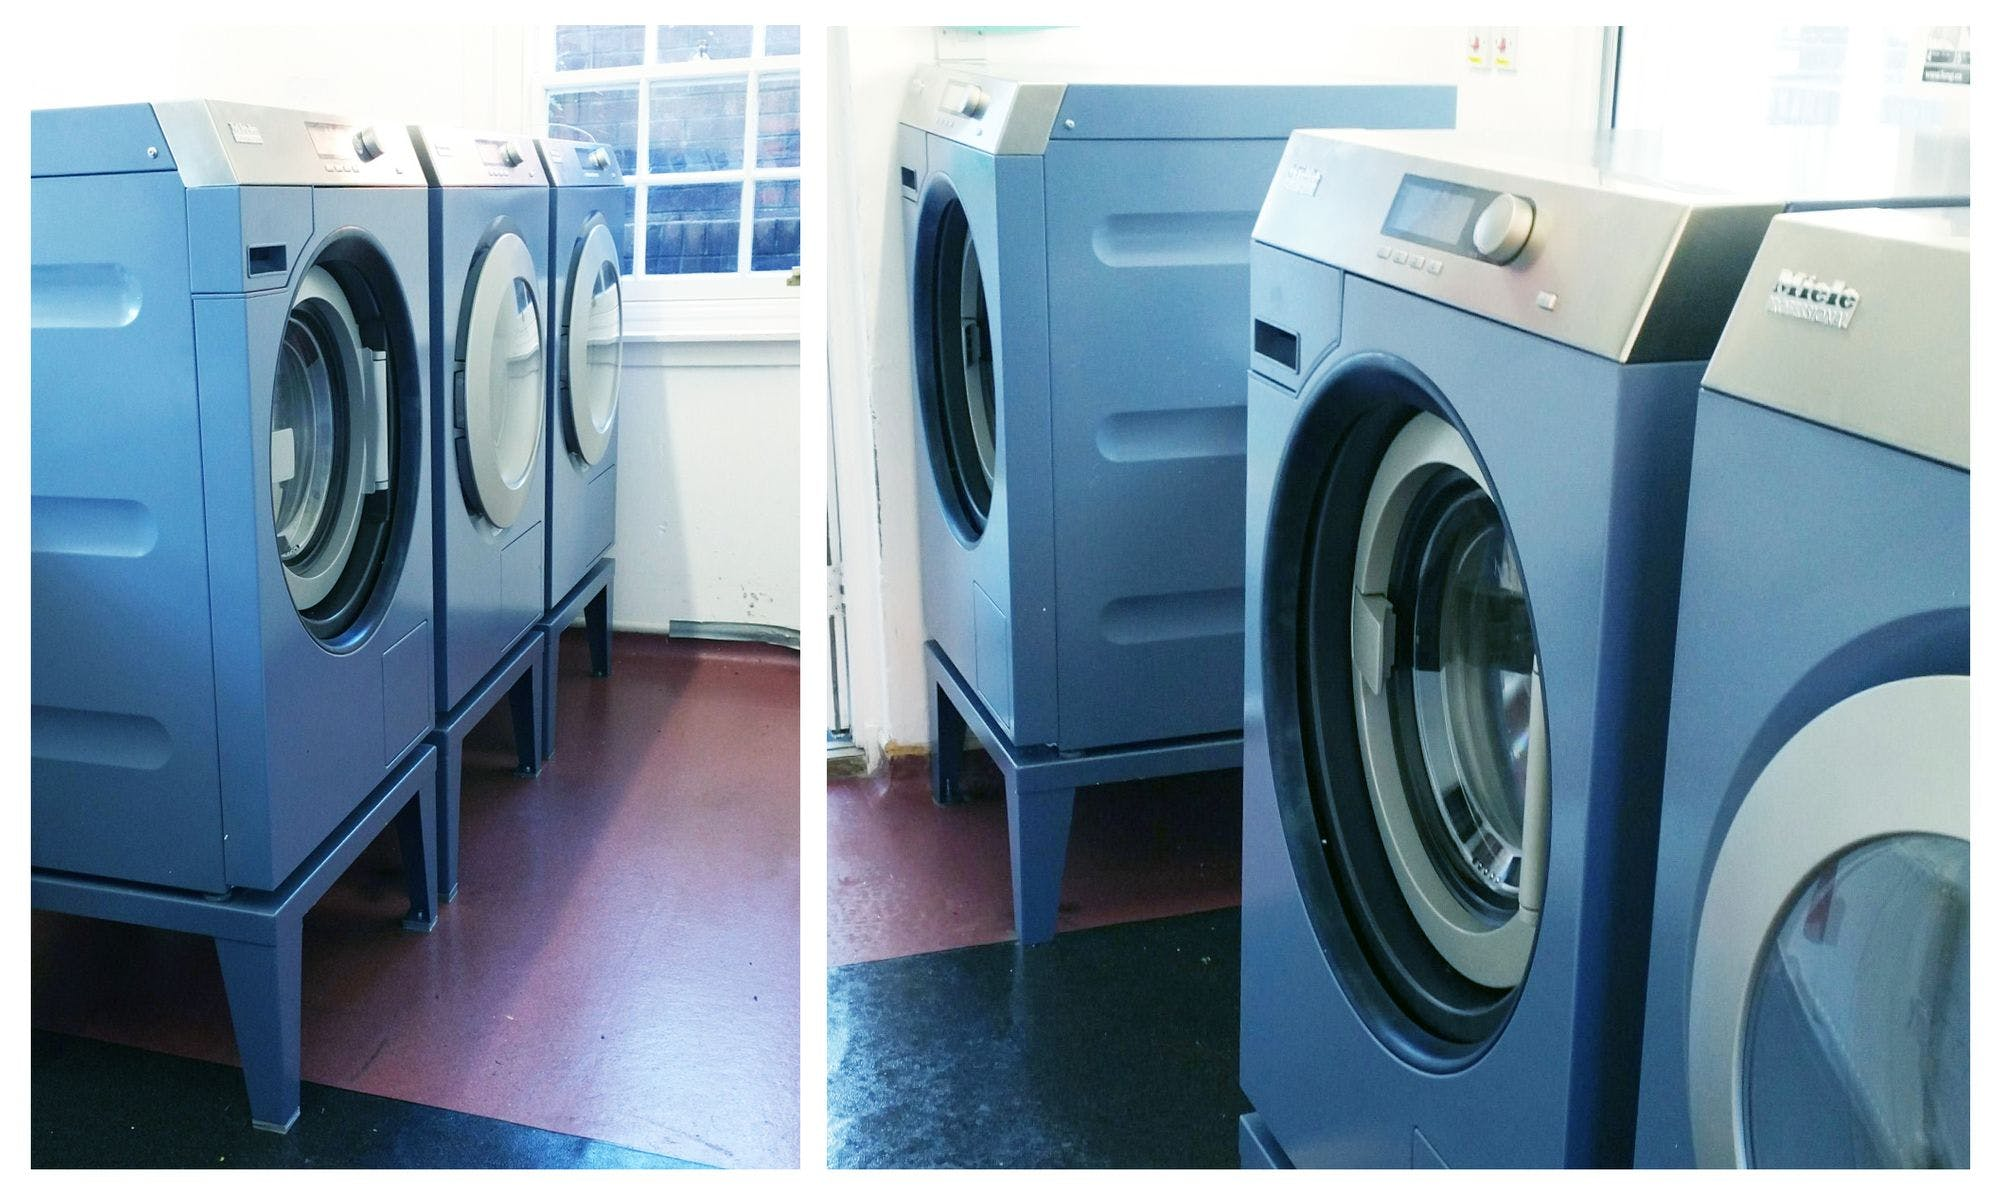 Laundry is critical as Covid-19 survives on healthcare uniforms for up to three days.